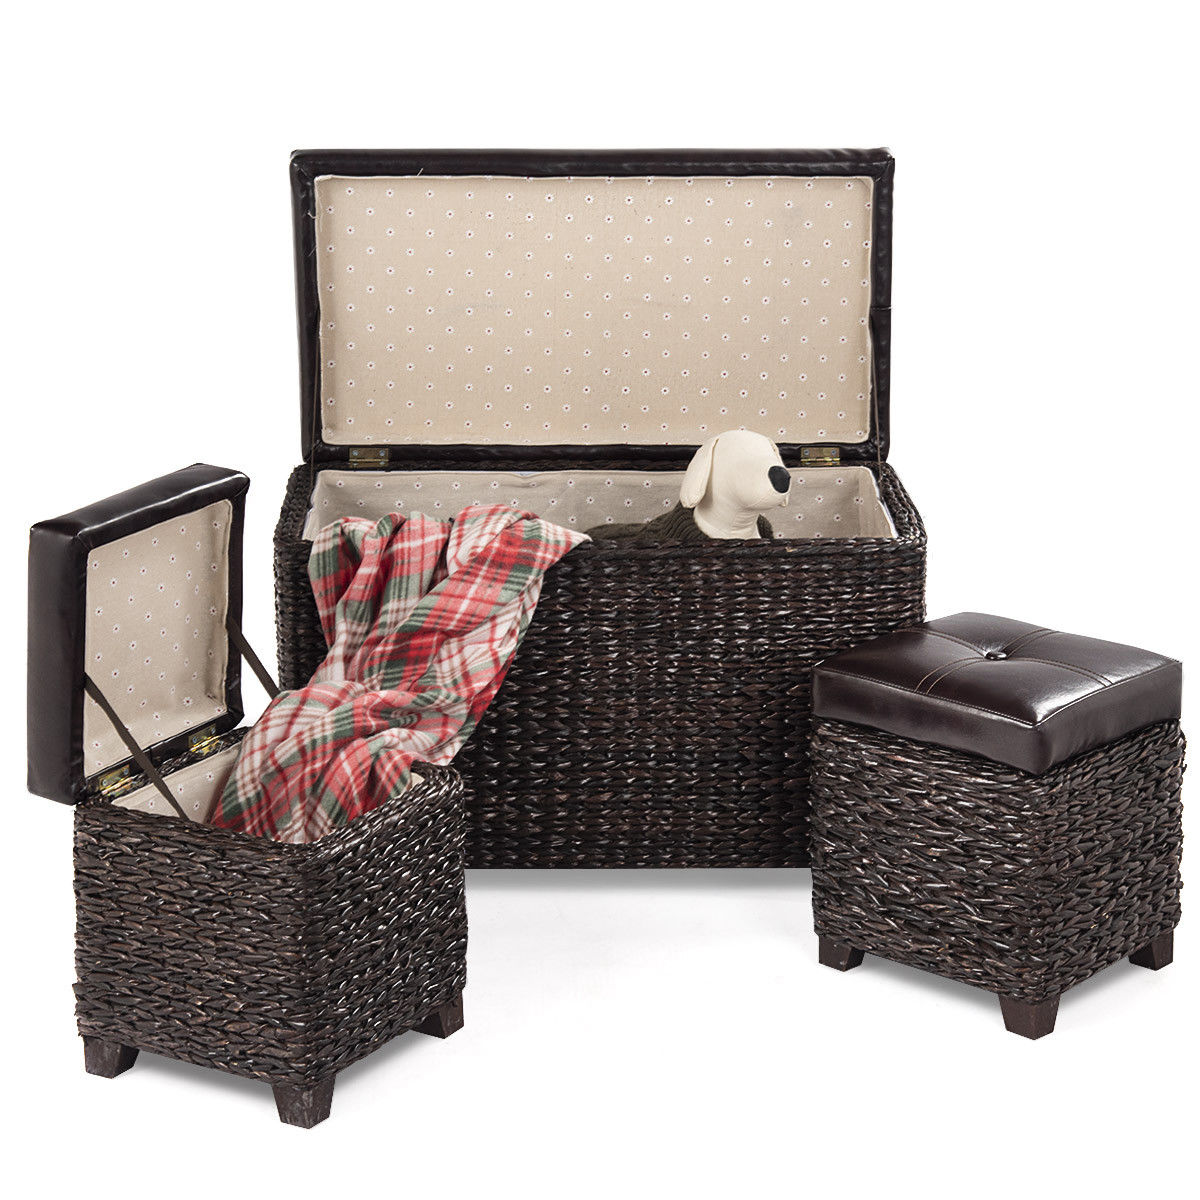 Gymax 3 Piece Bench Foot Rest Hassocks Rattan Stools Leather Ottoman  Seating Storage